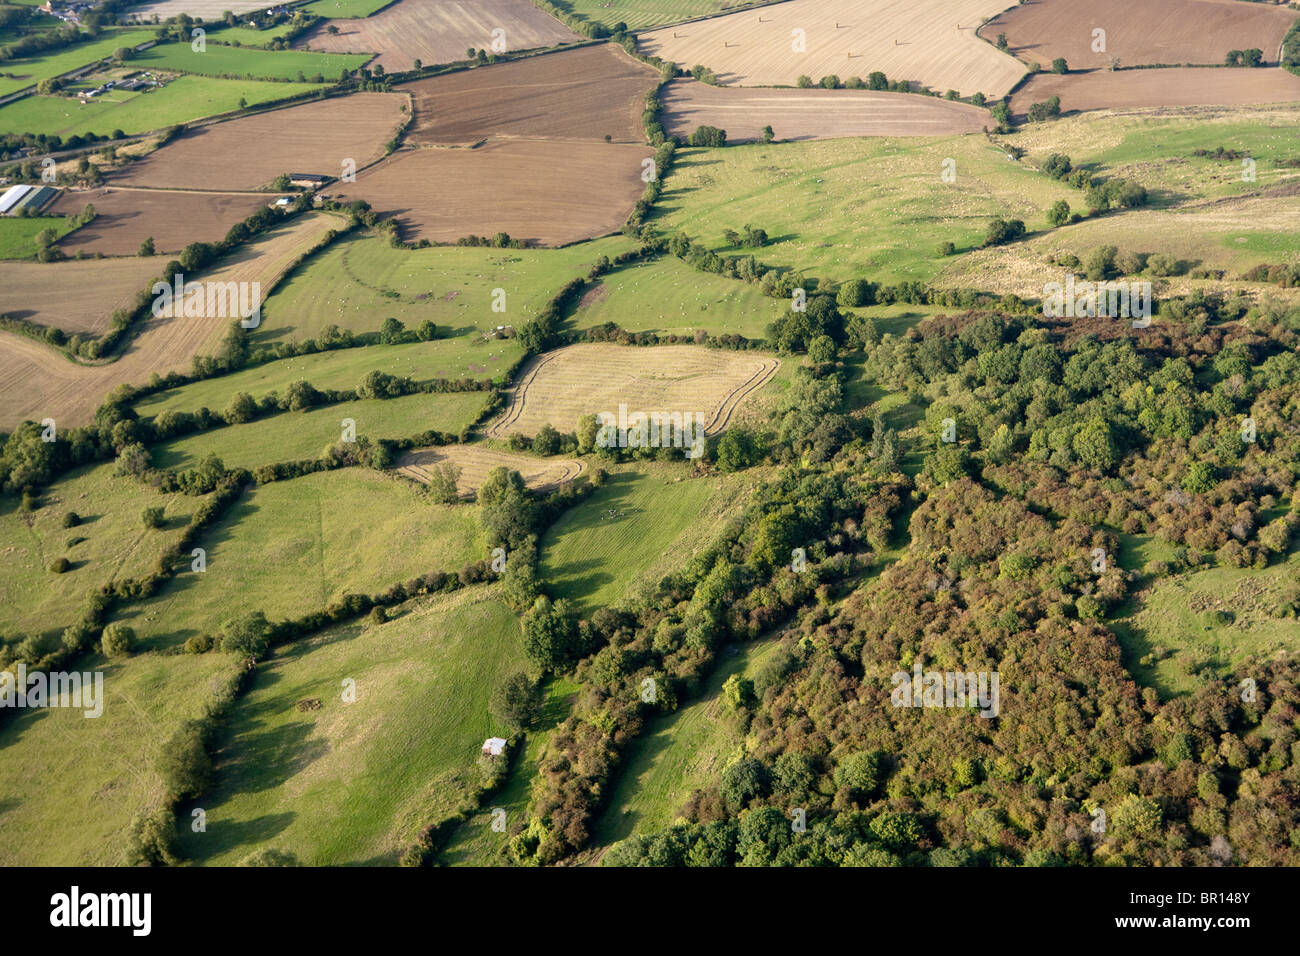 Typical English countryside - small fields, hedges and woodland on the Cotswolds NE of Winchcombe, Gloucestershire - Stock Image